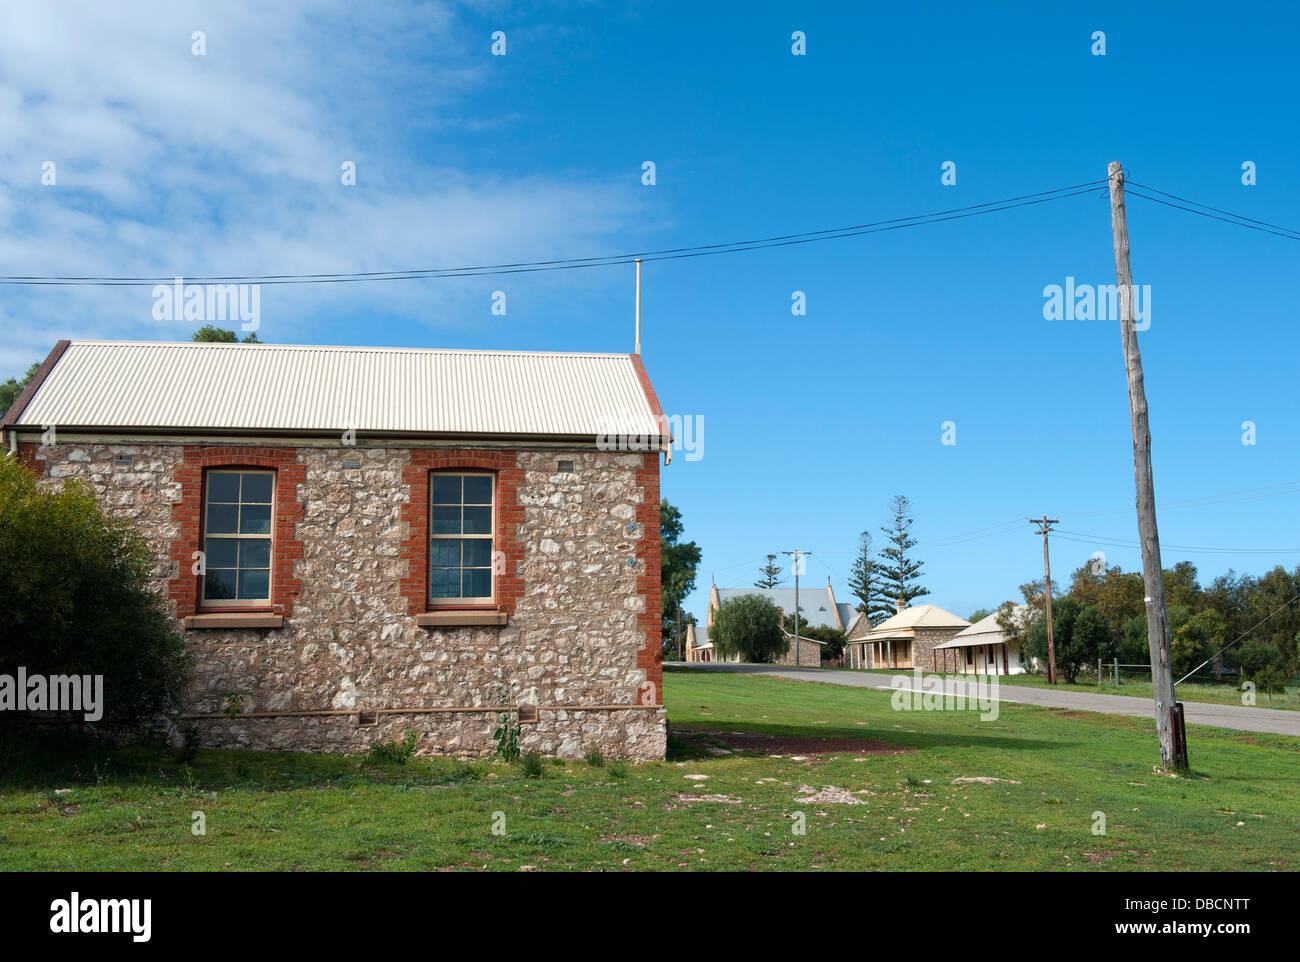 The Central Greenough Historic Settlement displays heritage buildings by early settlers, Coral Coast, Greenough, - Stock Image